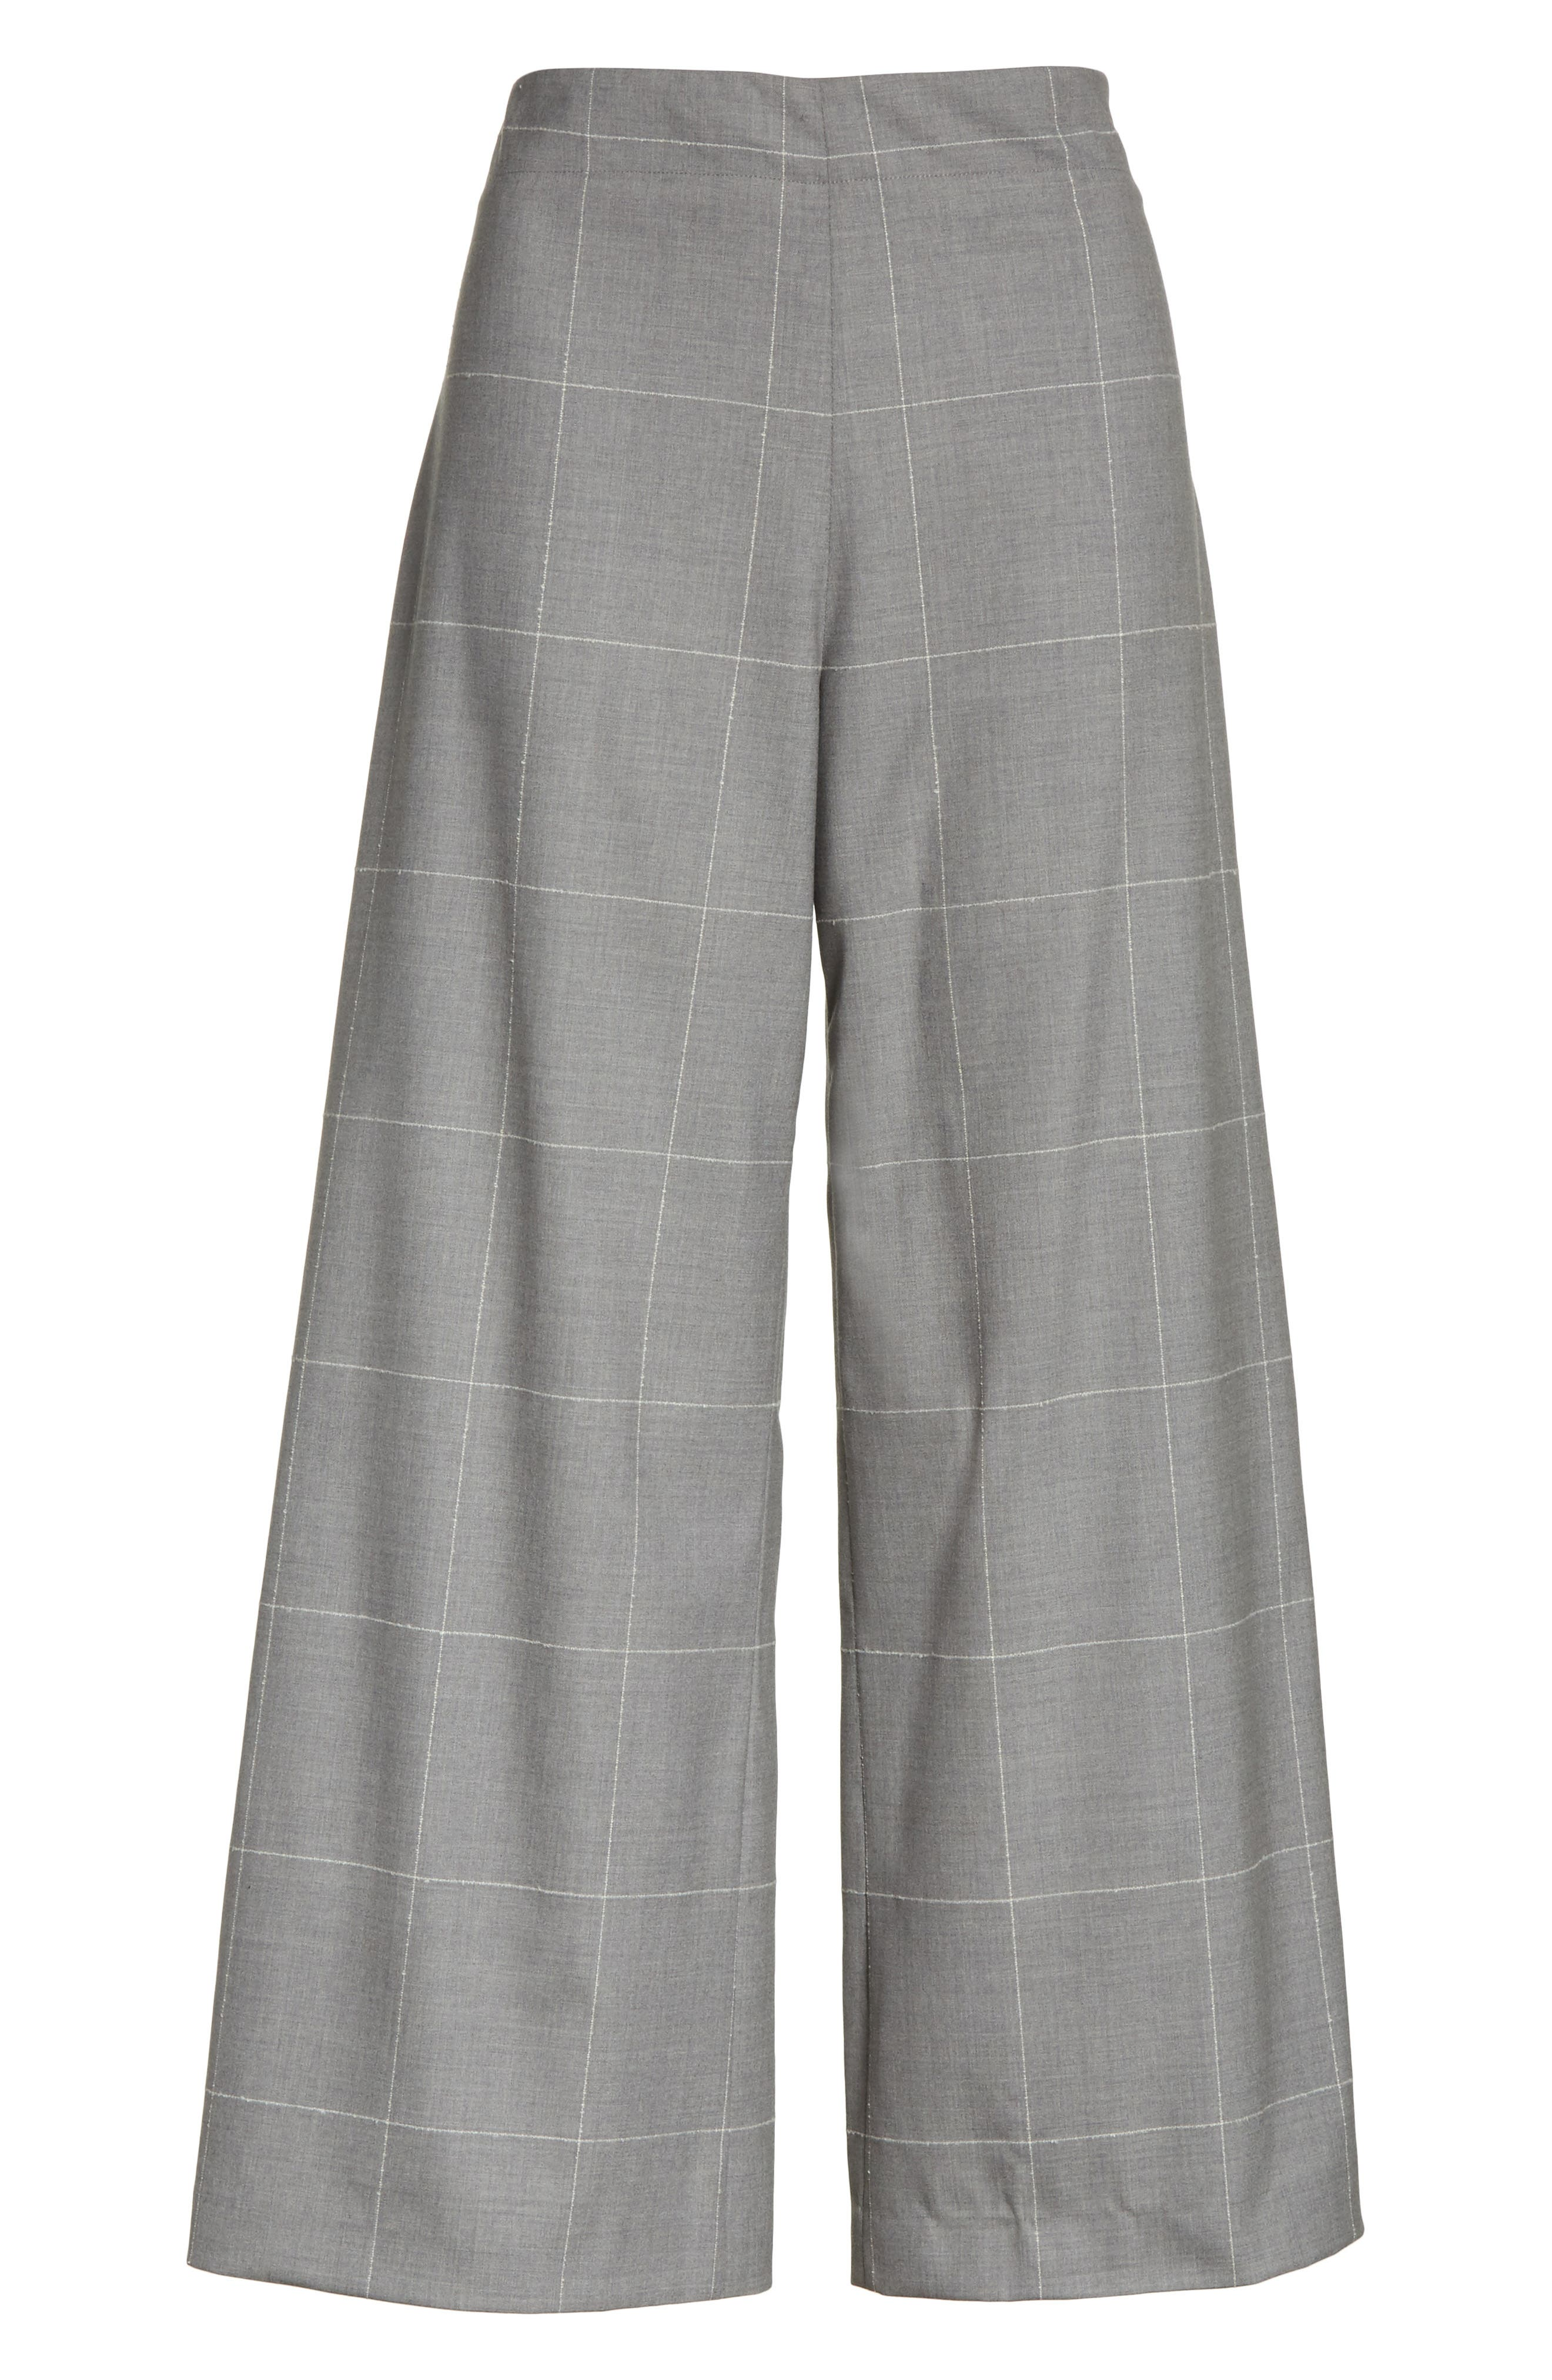 Windowpane Check Wool Wide Leg Crop Pants,                             Alternate thumbnail 7, color,                             Grey/ Ivory